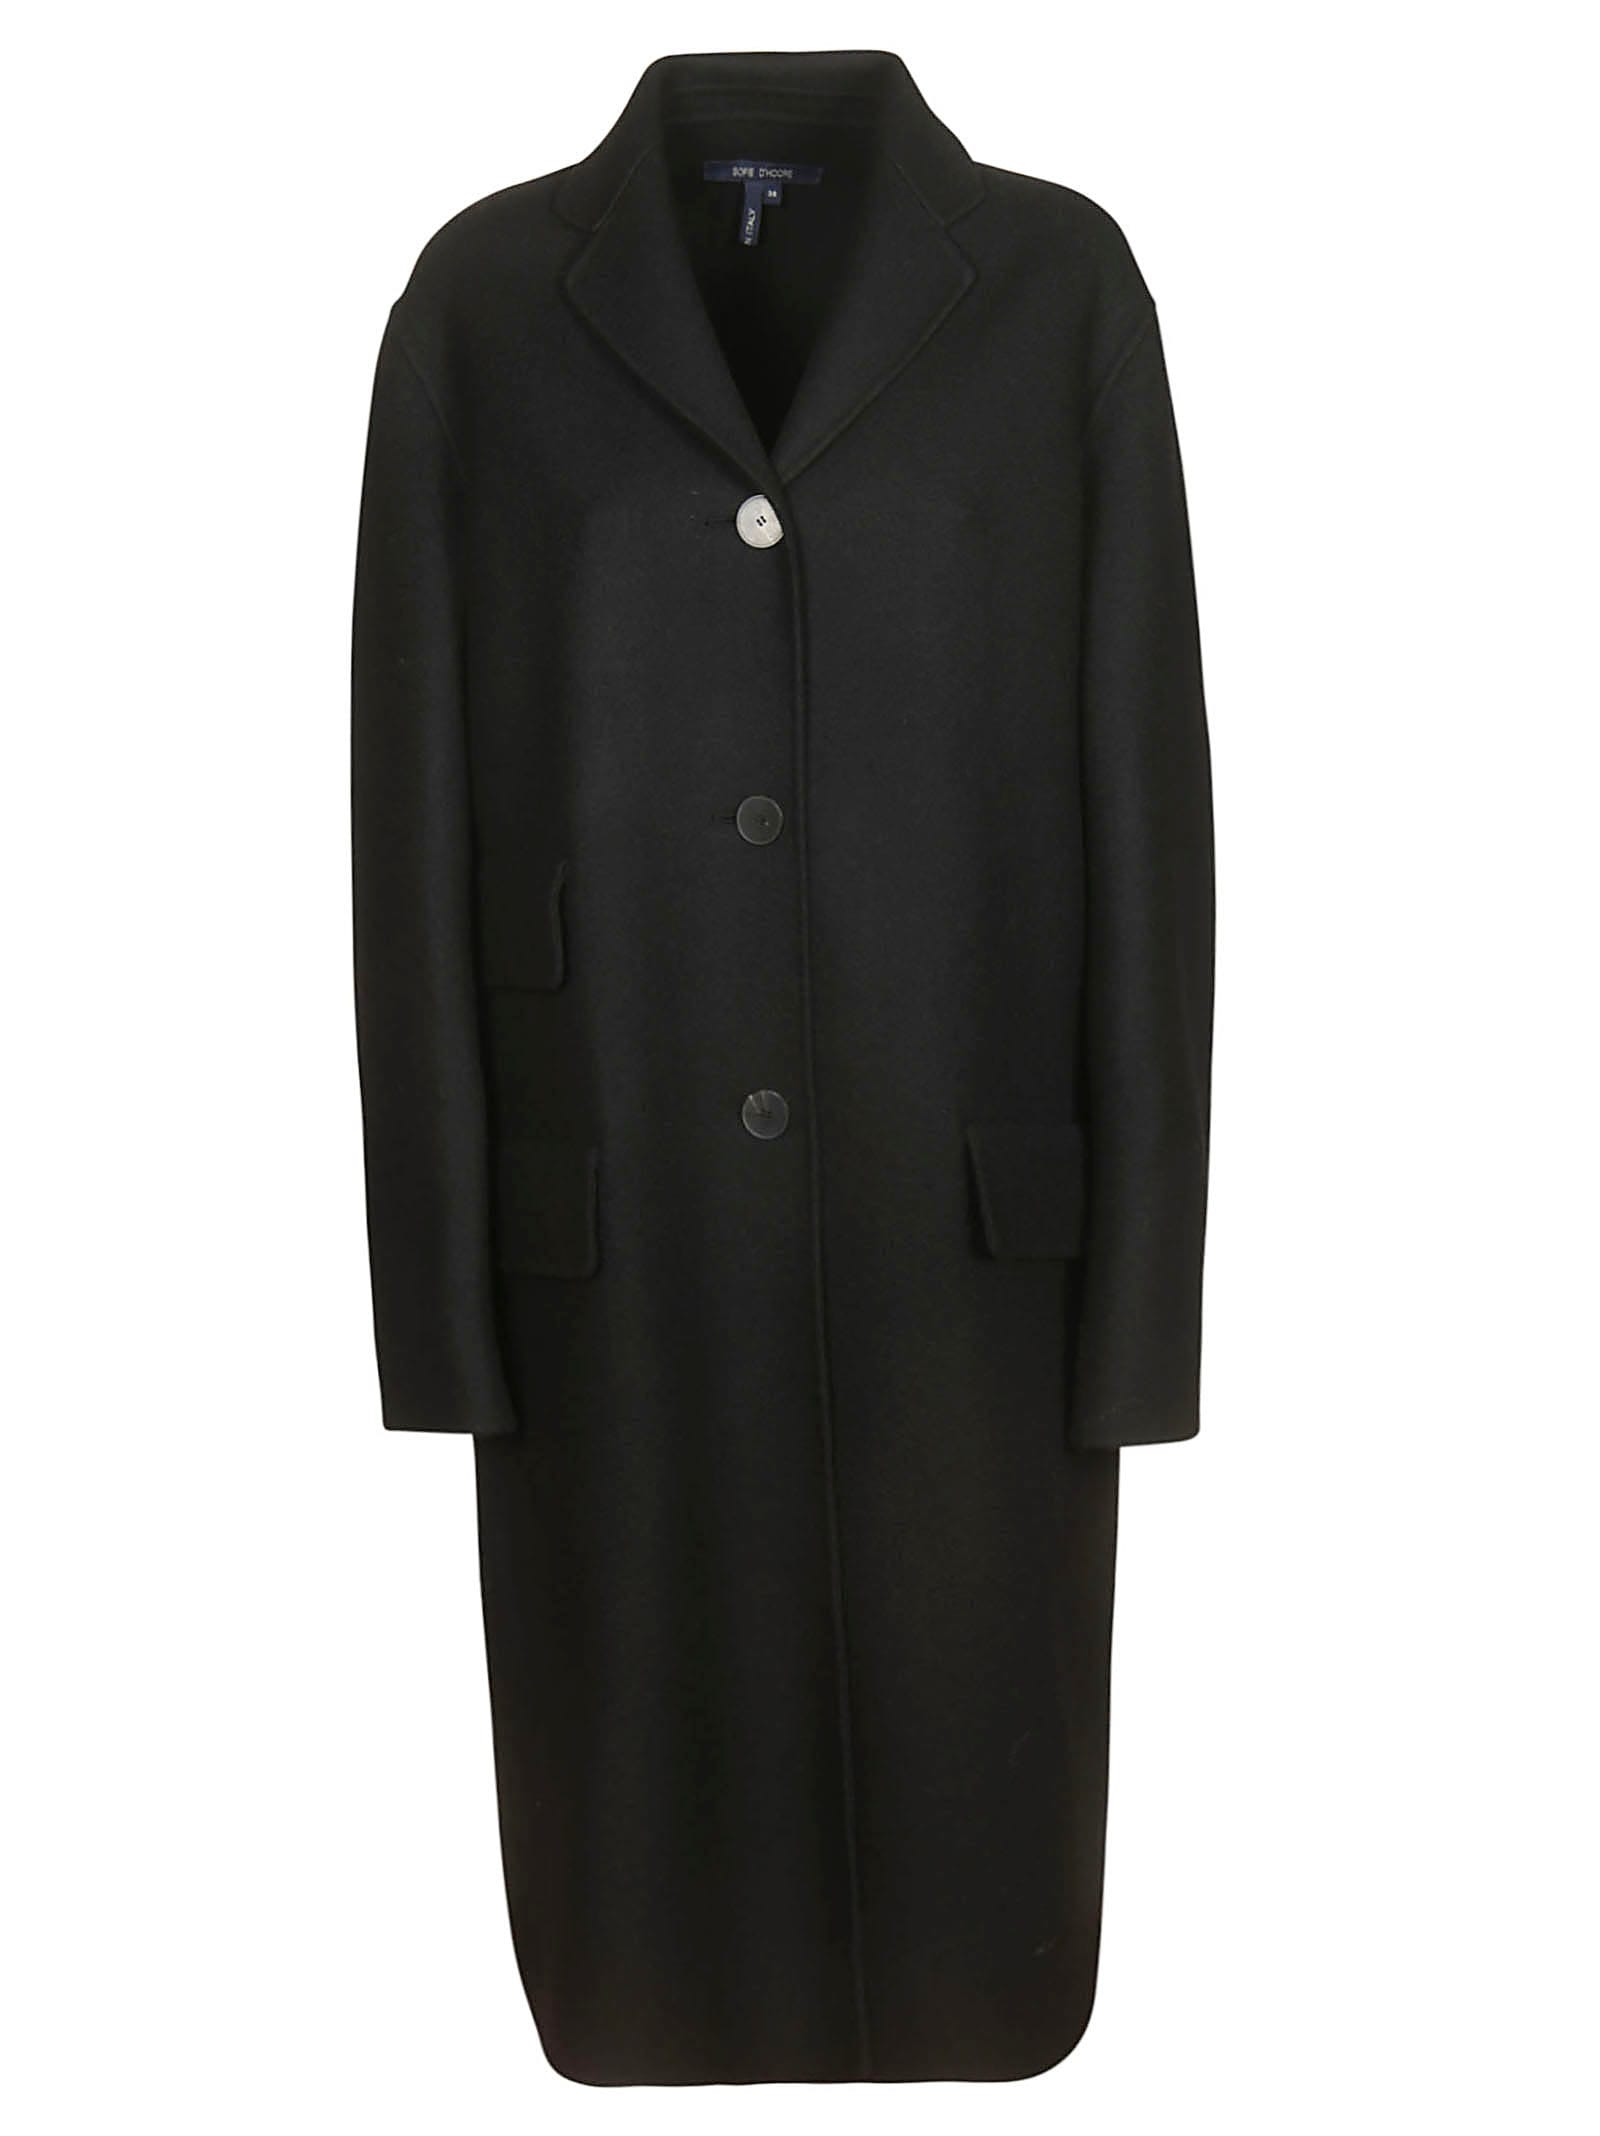 Sofie dHoore Buttoned Coat